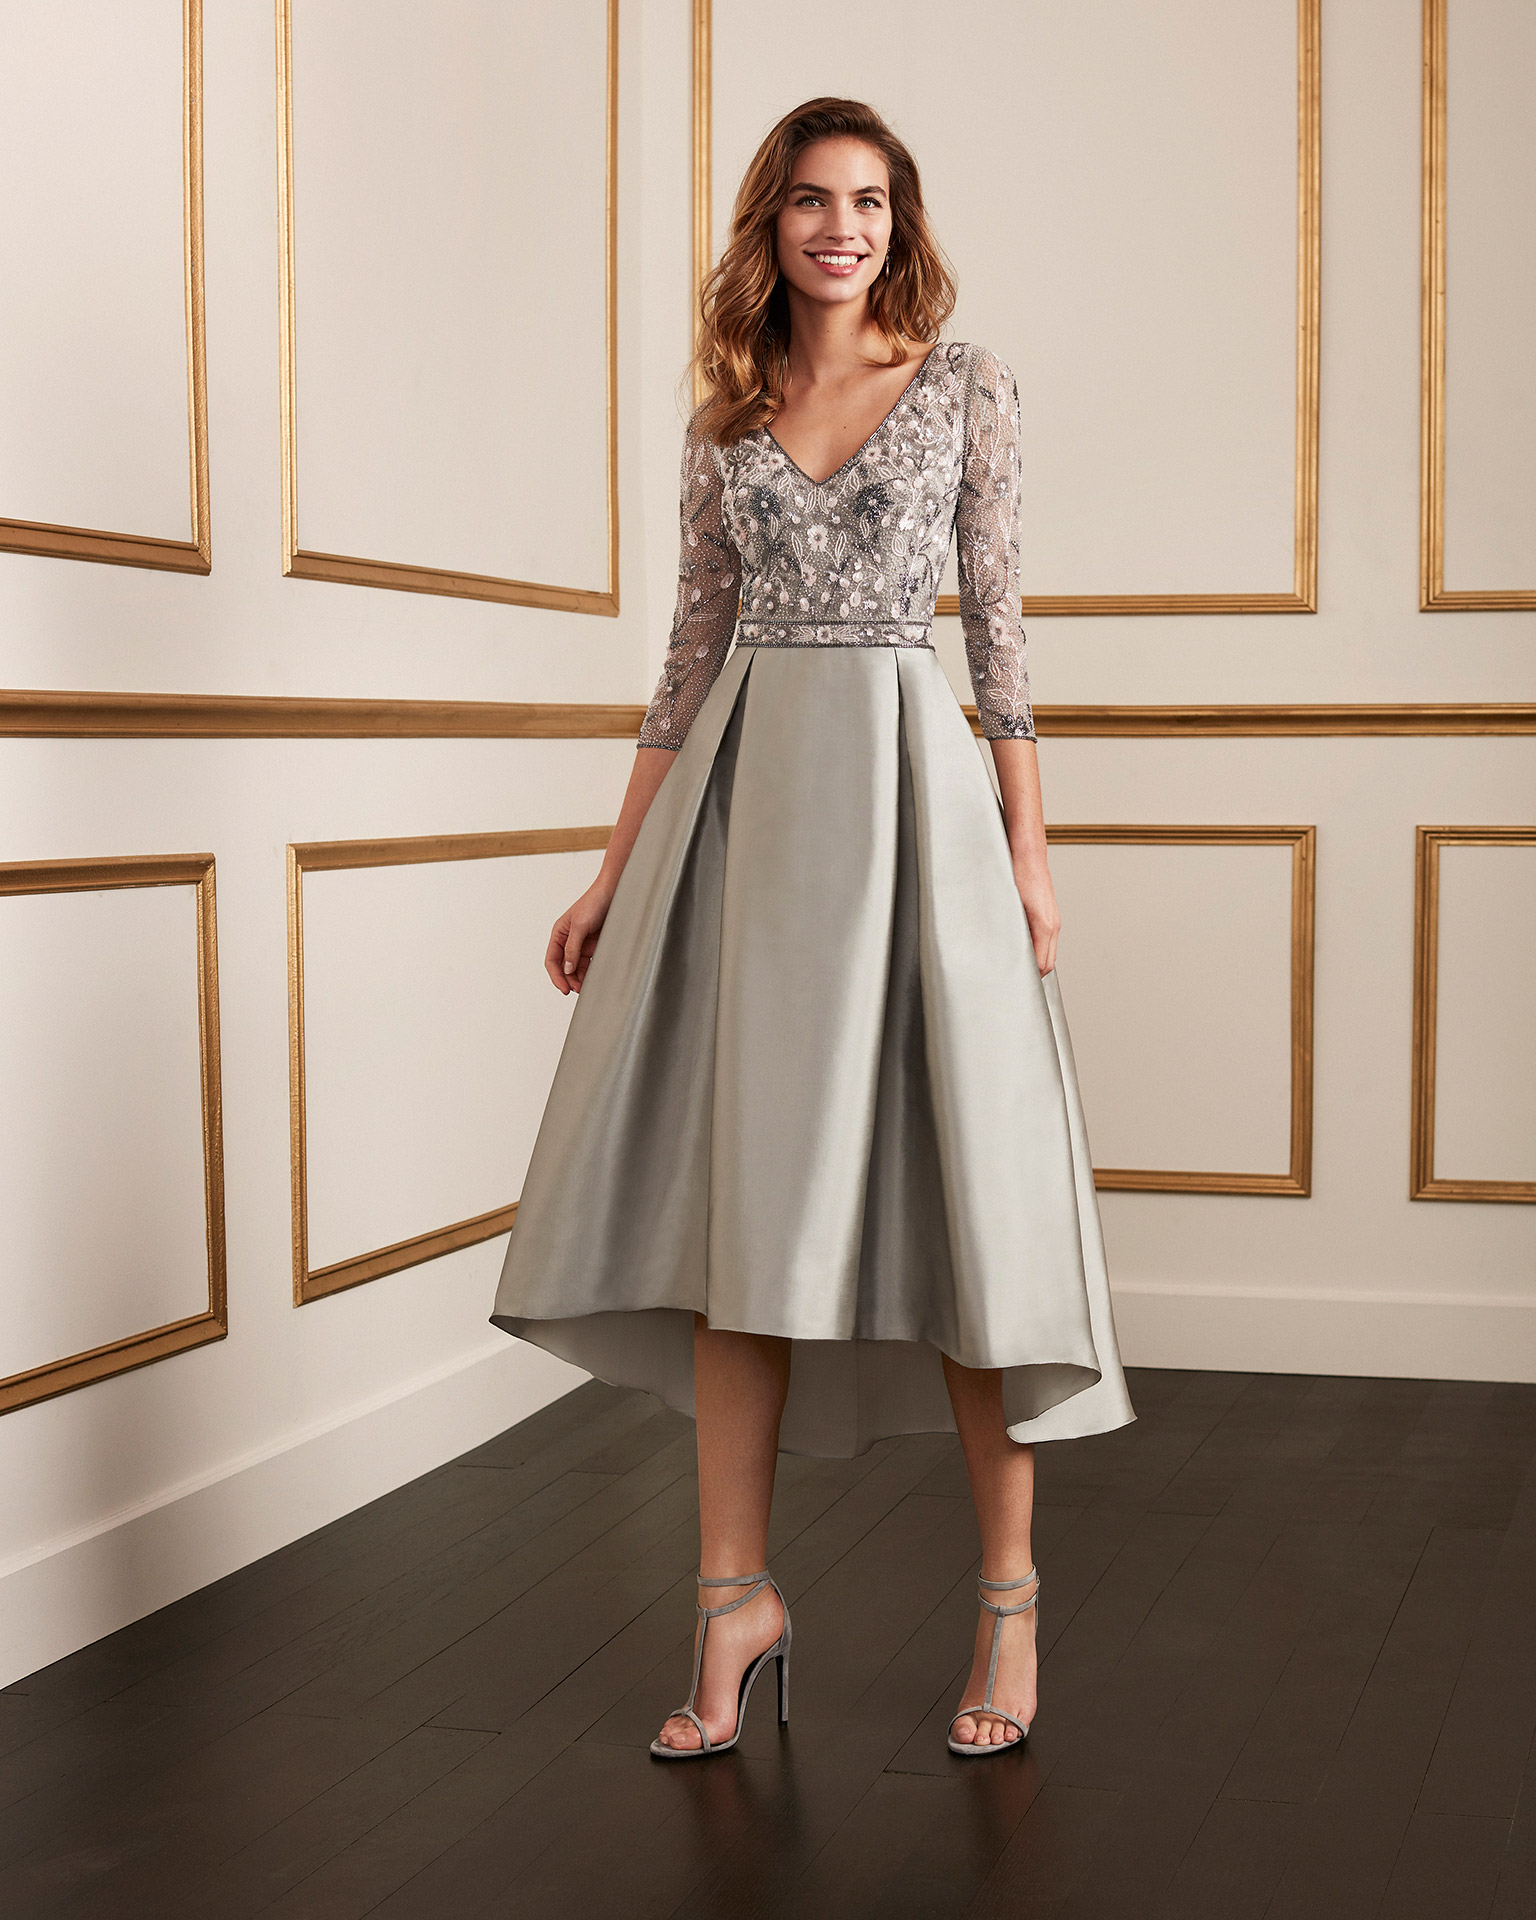 Short taffeta cocktail dress with beaded bodice. V-neckline with beaded three-quarter sleeves. 2020 MARFIL BARCELONA Collection.